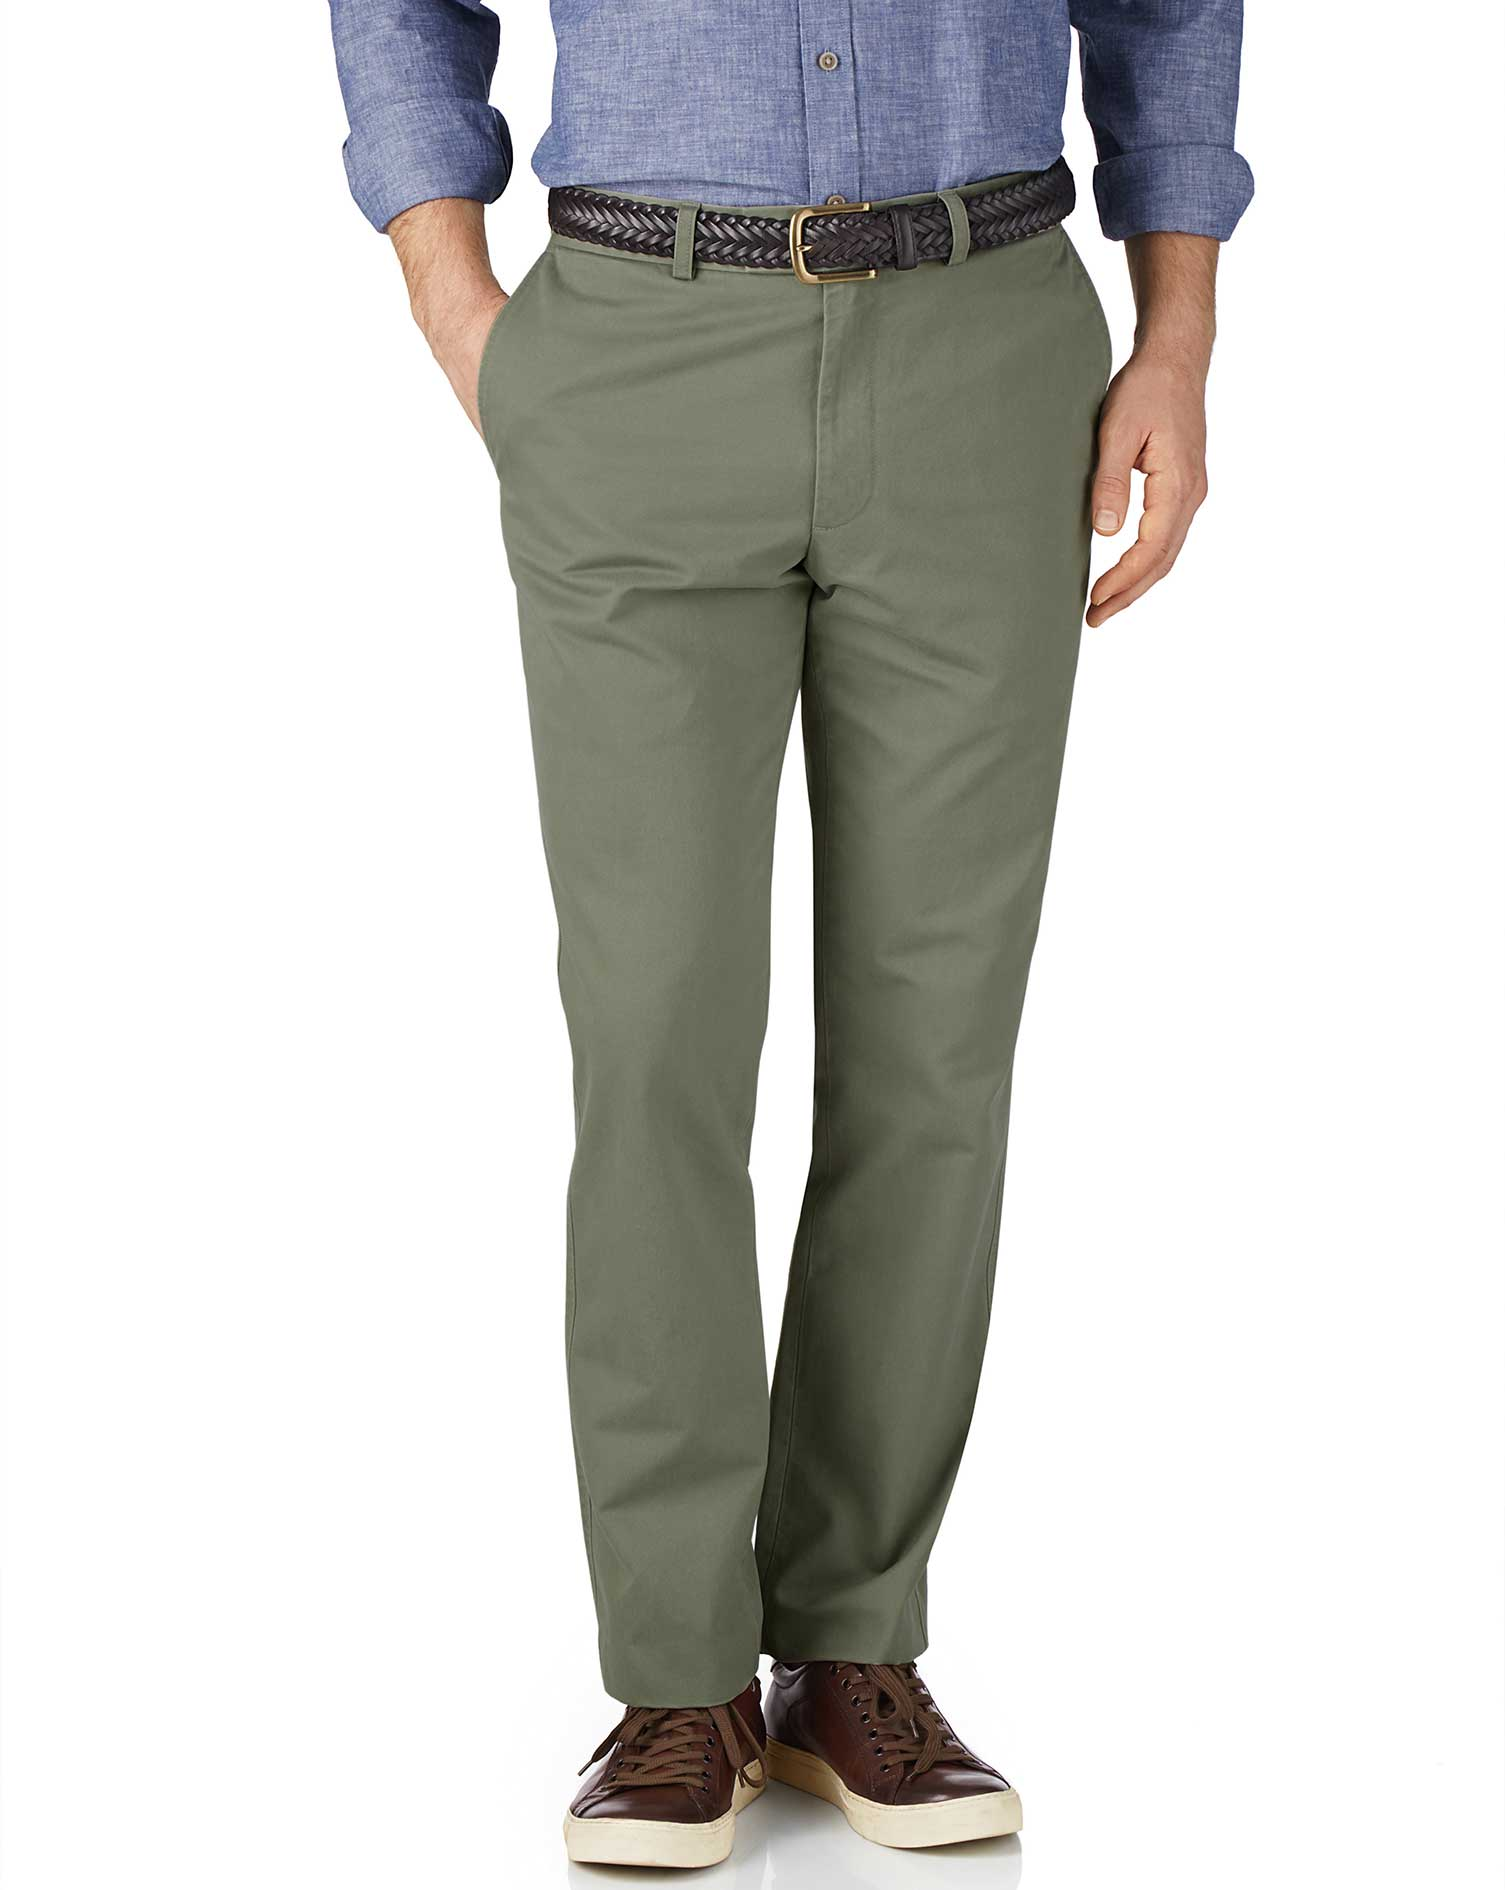 Light Green Slim Fit Flat Front Cotton Chino Trousers Size W32 L38 by Charles Tyrwhitt